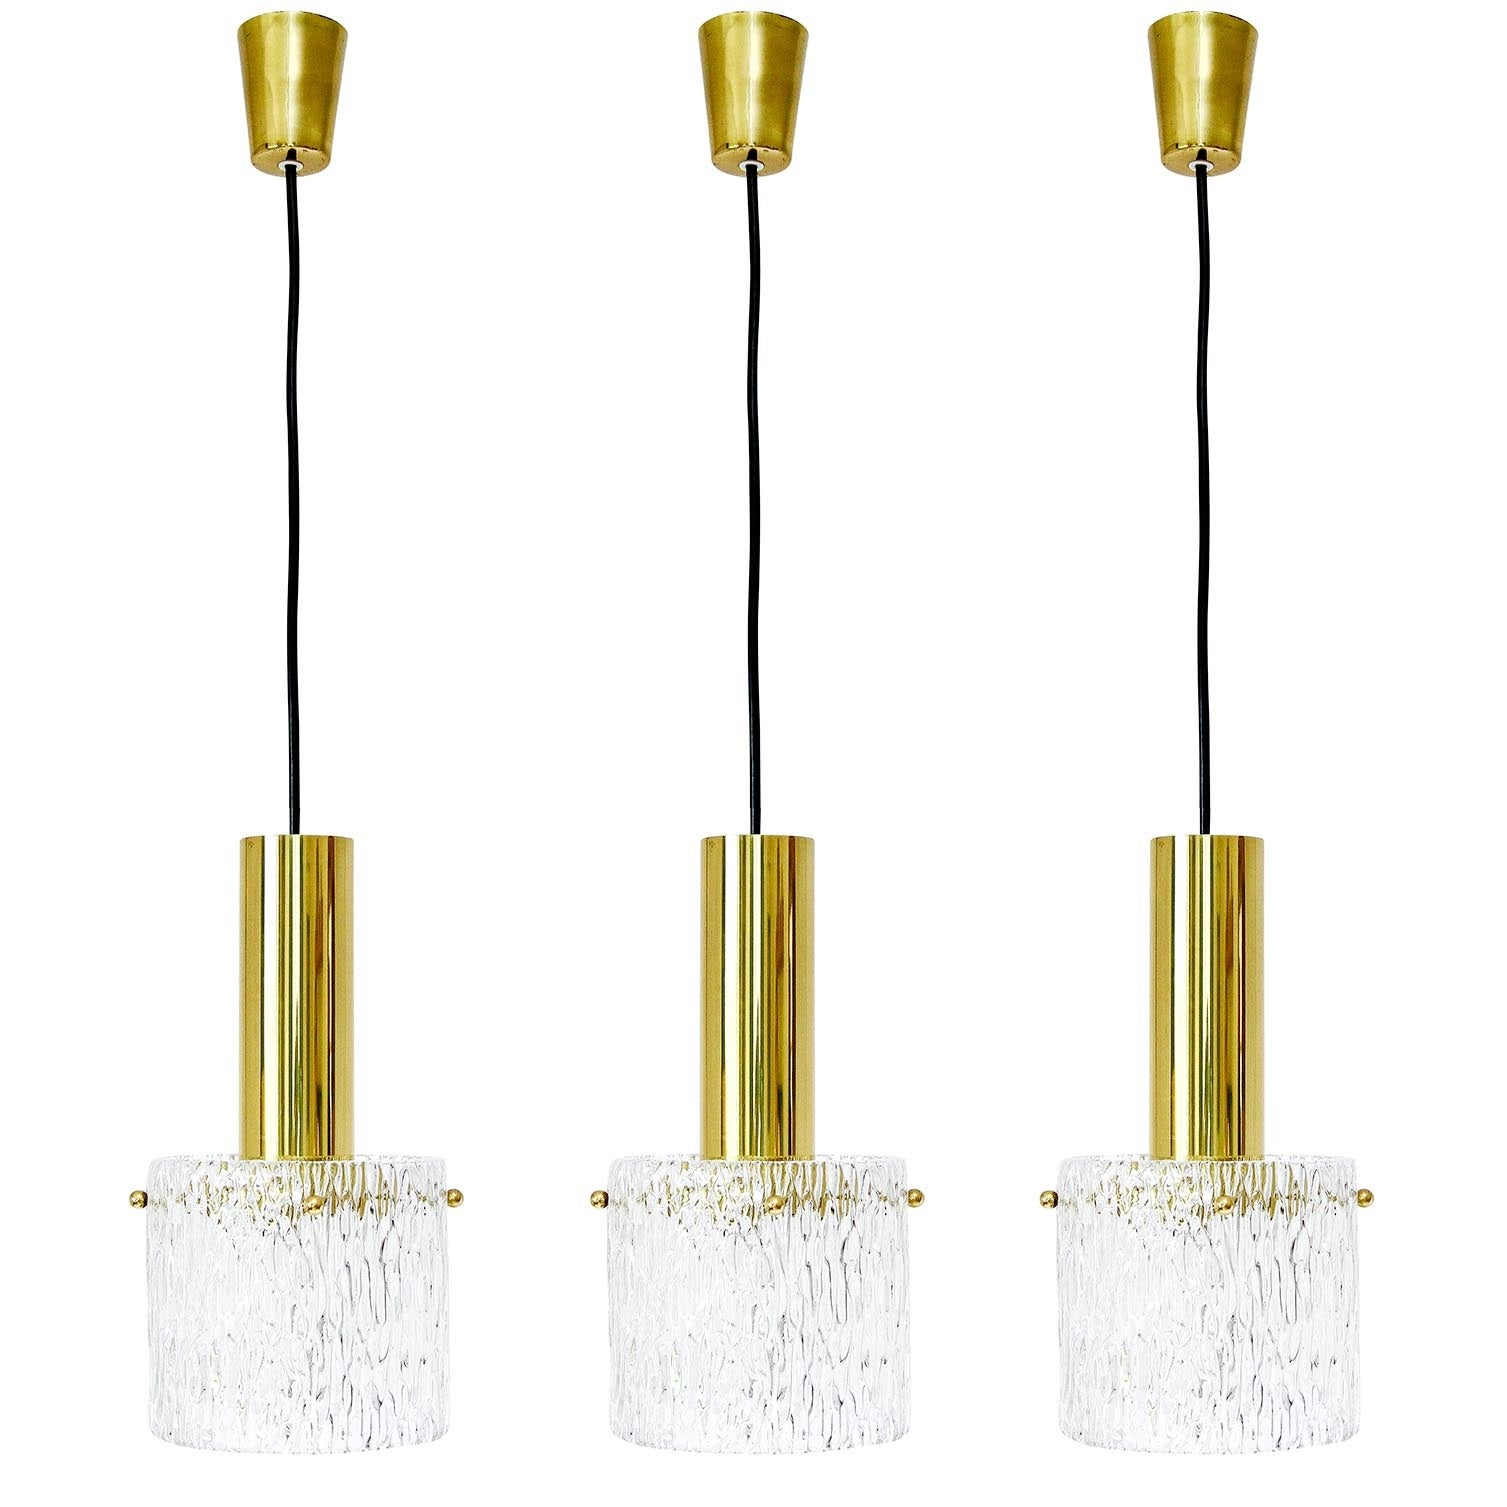 Brass and copper nautical pendant lights pair for sale at 1stdibs aloadofball Image collections